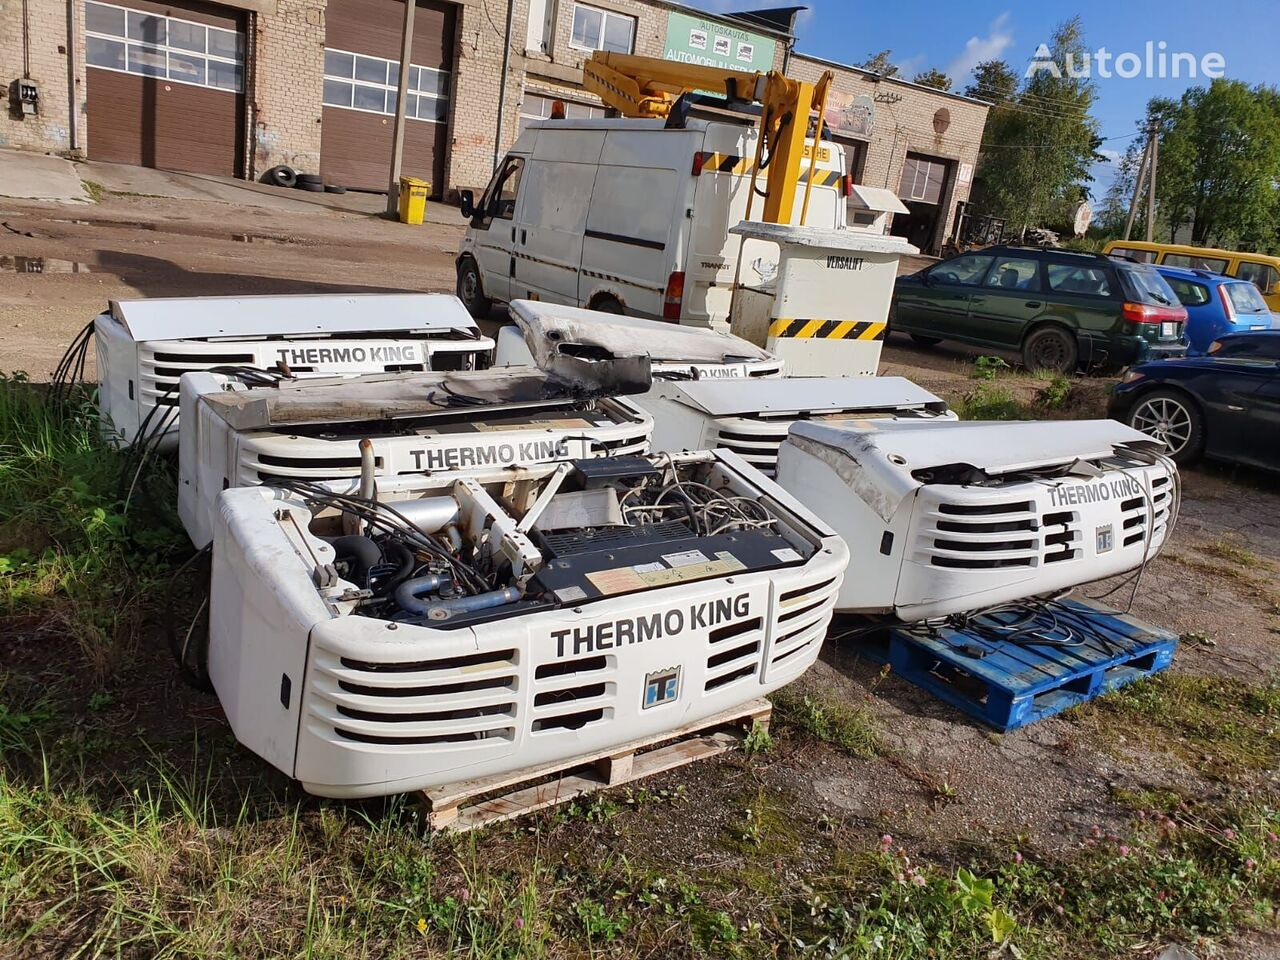 THERMO KING - SPECTRUM TS refrigeration unit